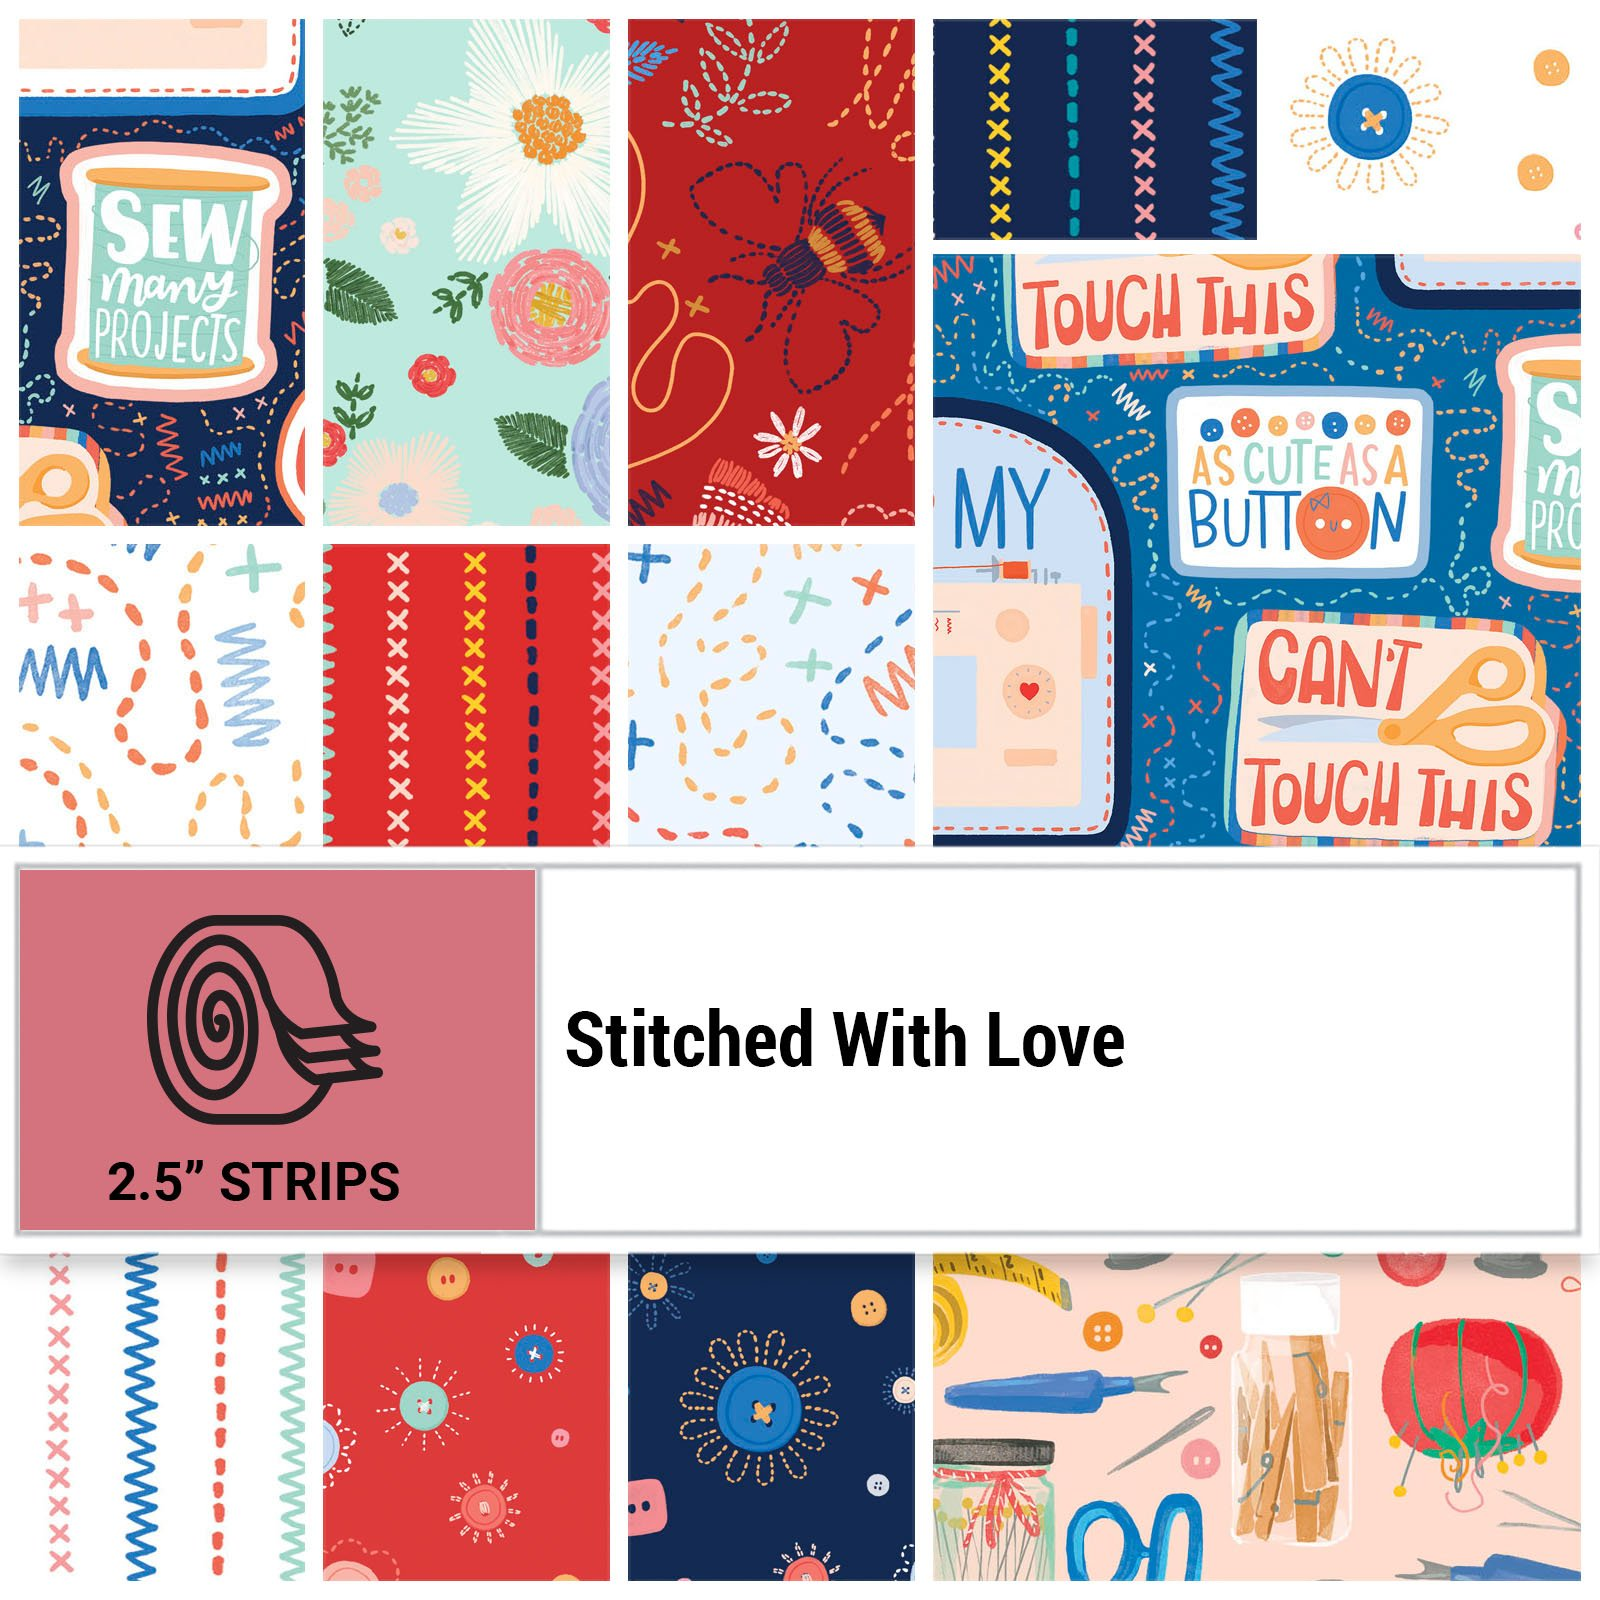 SWLO-STRIPS - STITCHED WITH LOVE 2.5 STRIPS 40PCS - ARRIVING IN MARCH 2022